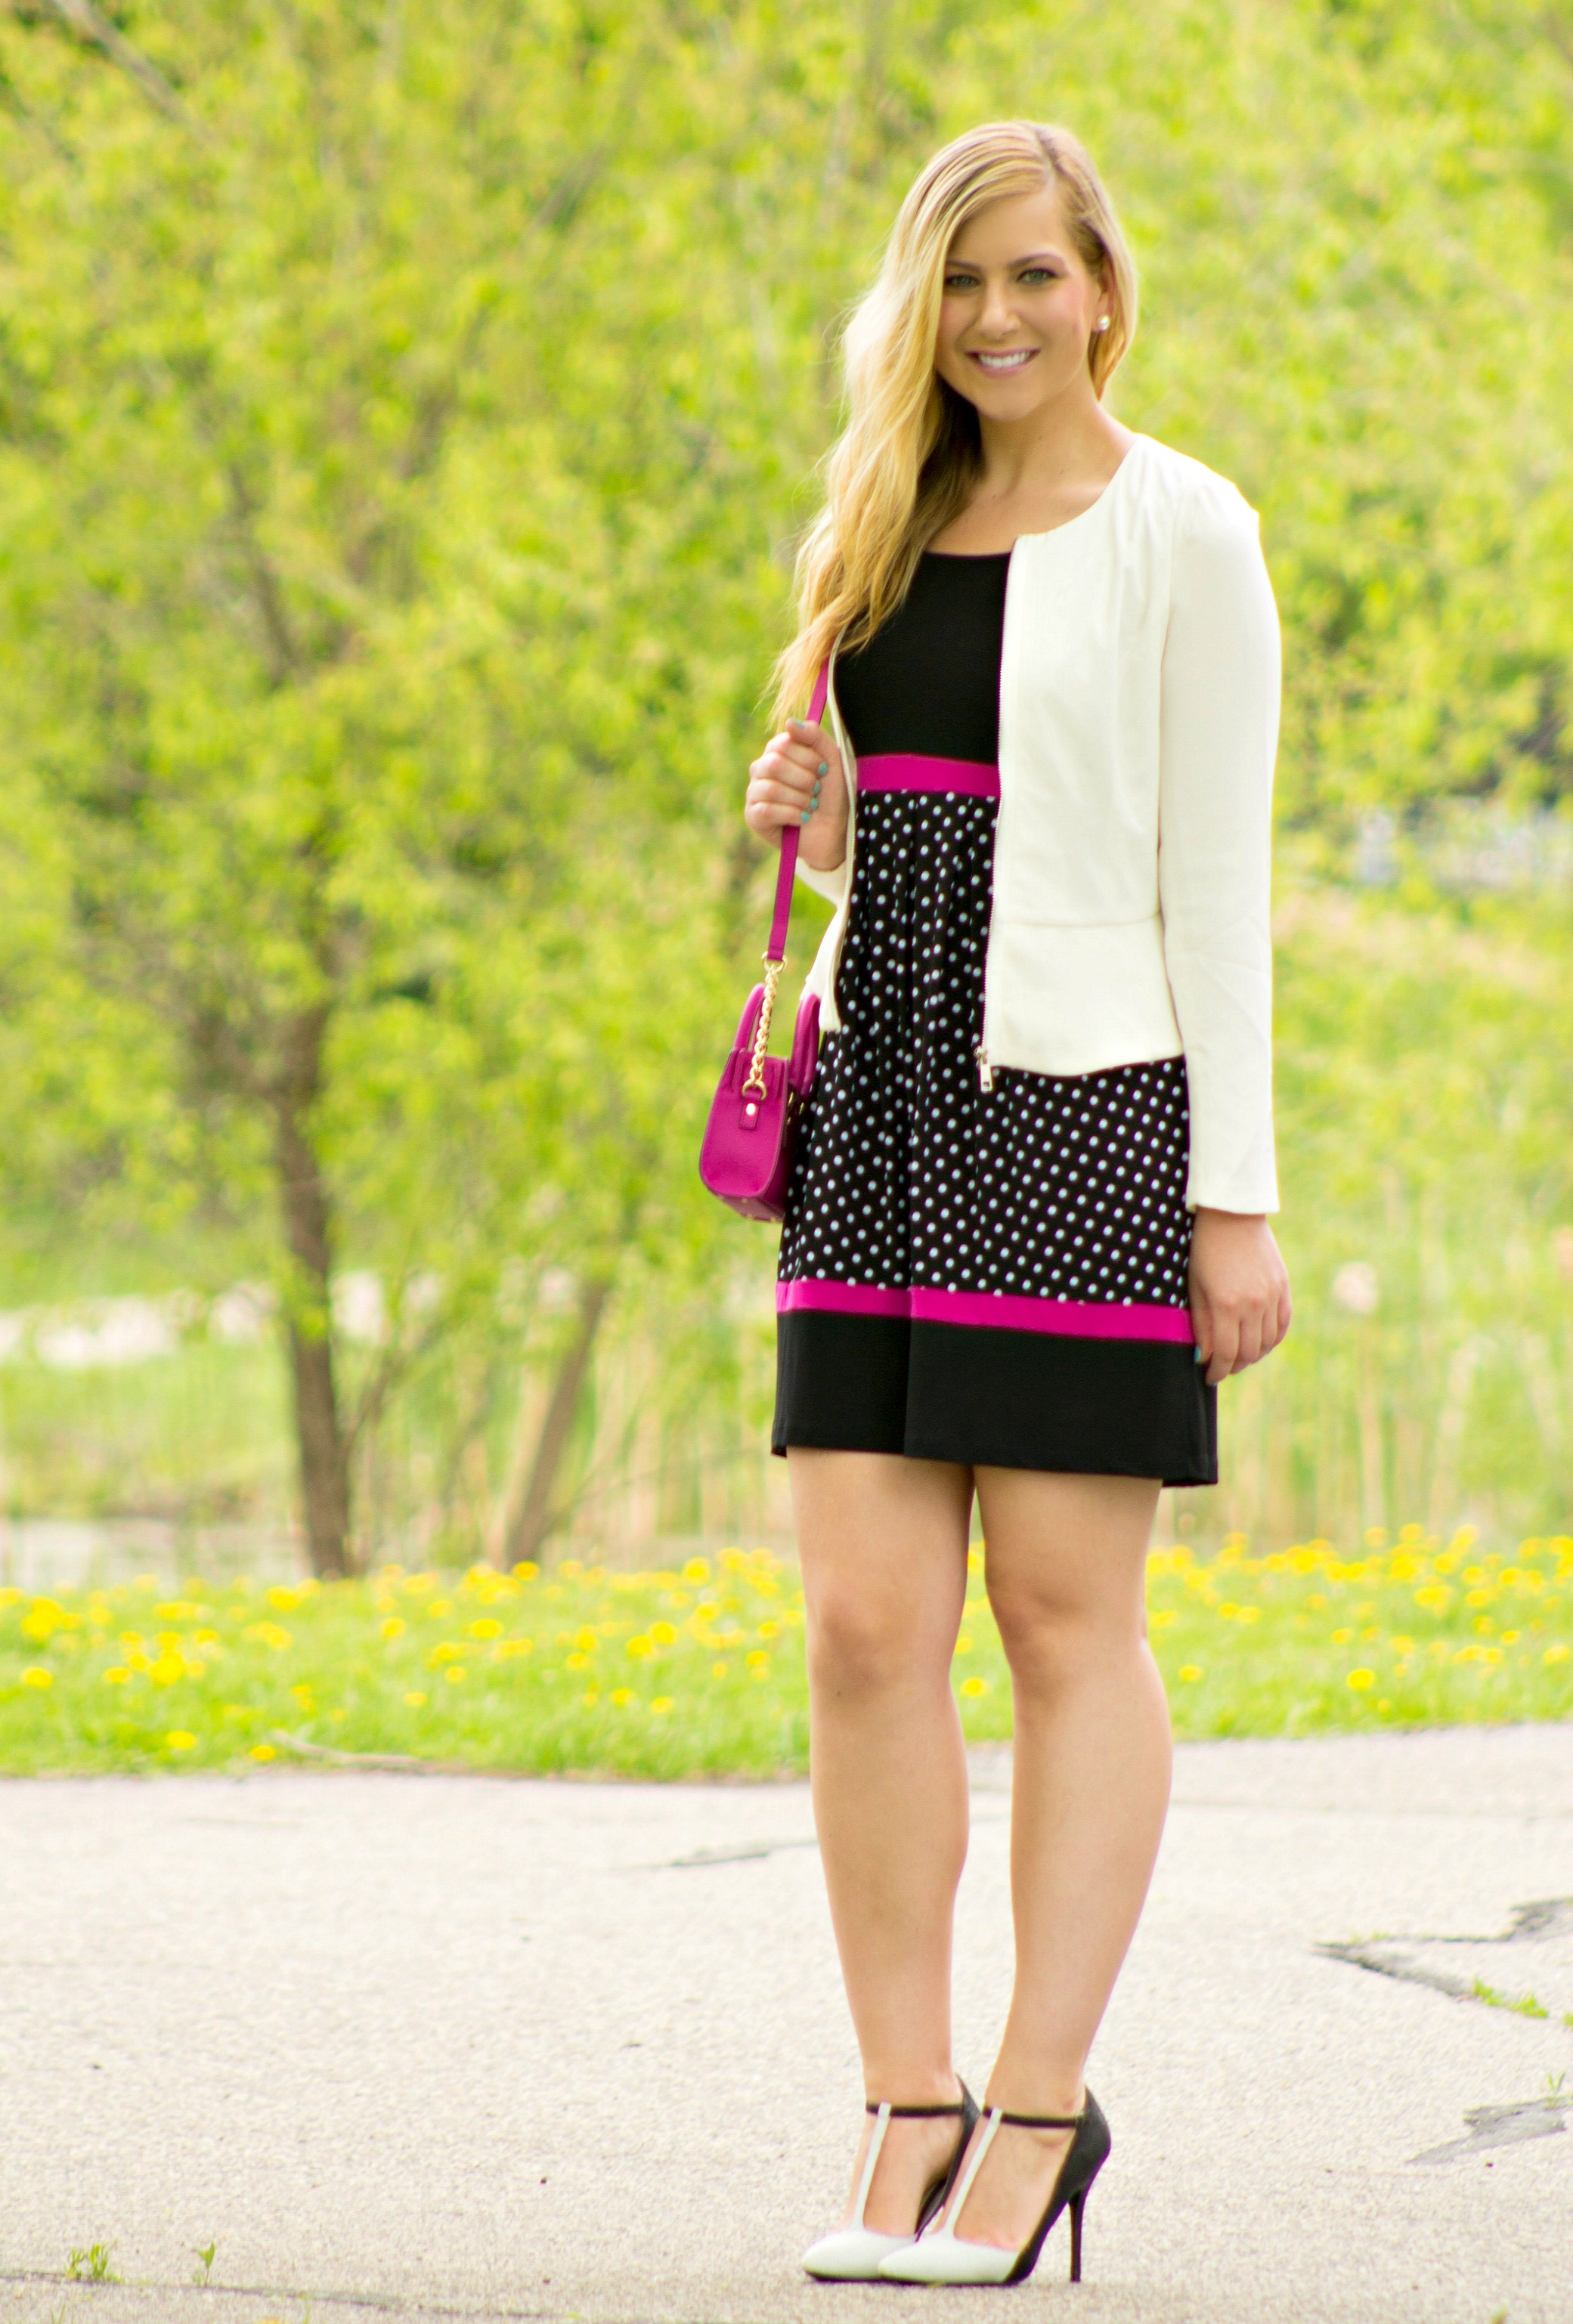 Black Dress And Pink Heels - Is Heel